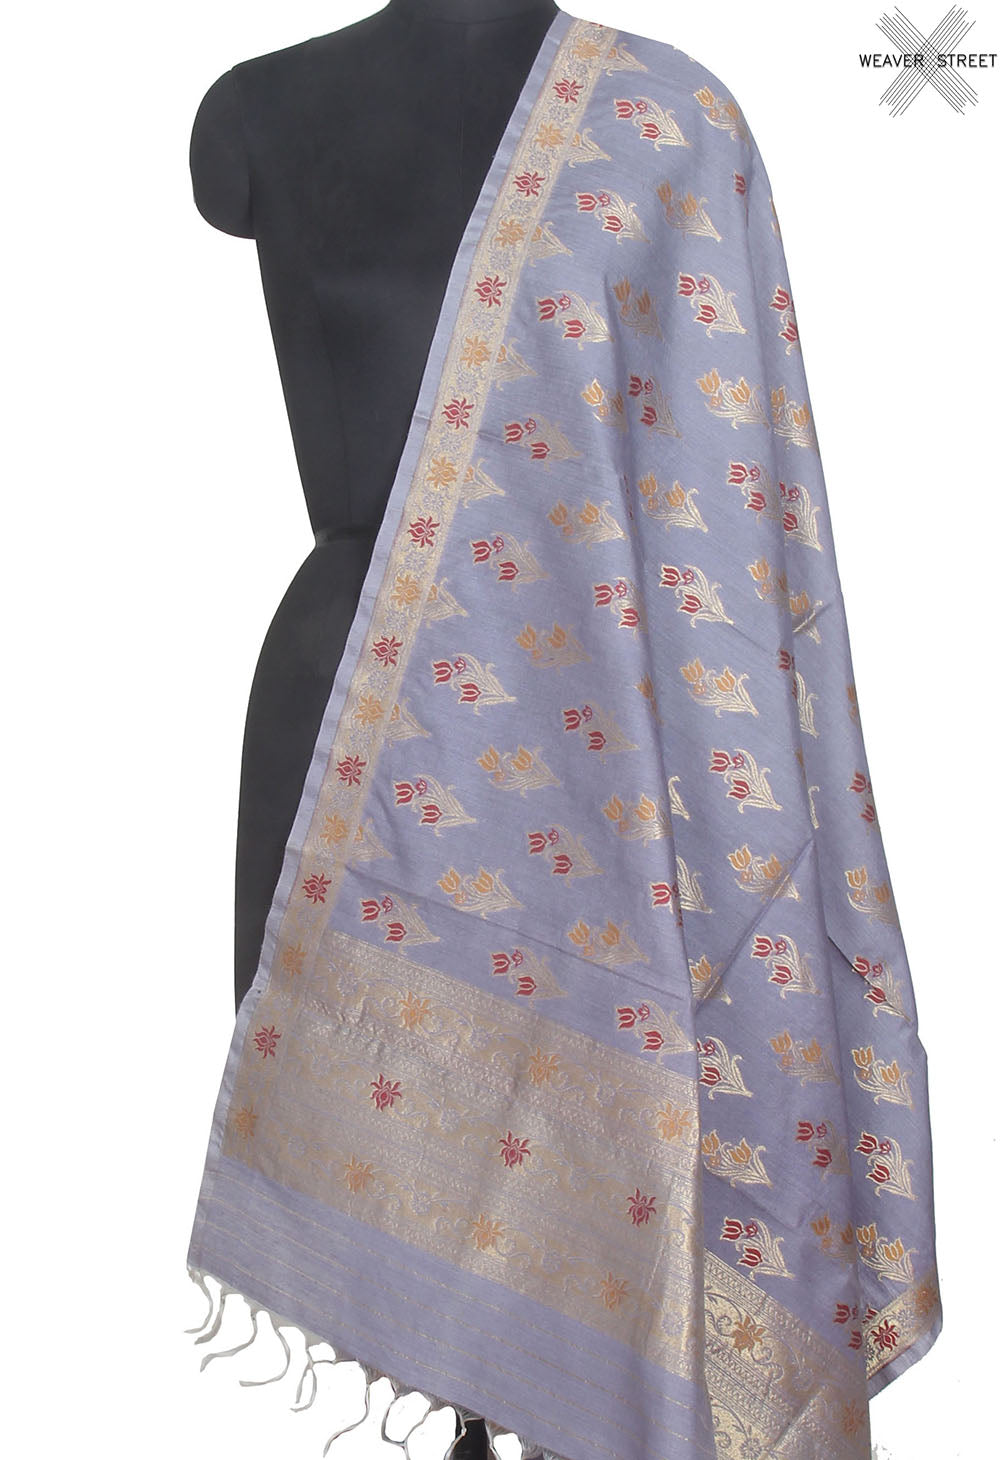 Cement grey Muga silk handwoven Banarasi dupatta with meenedar flower buta (1) Main